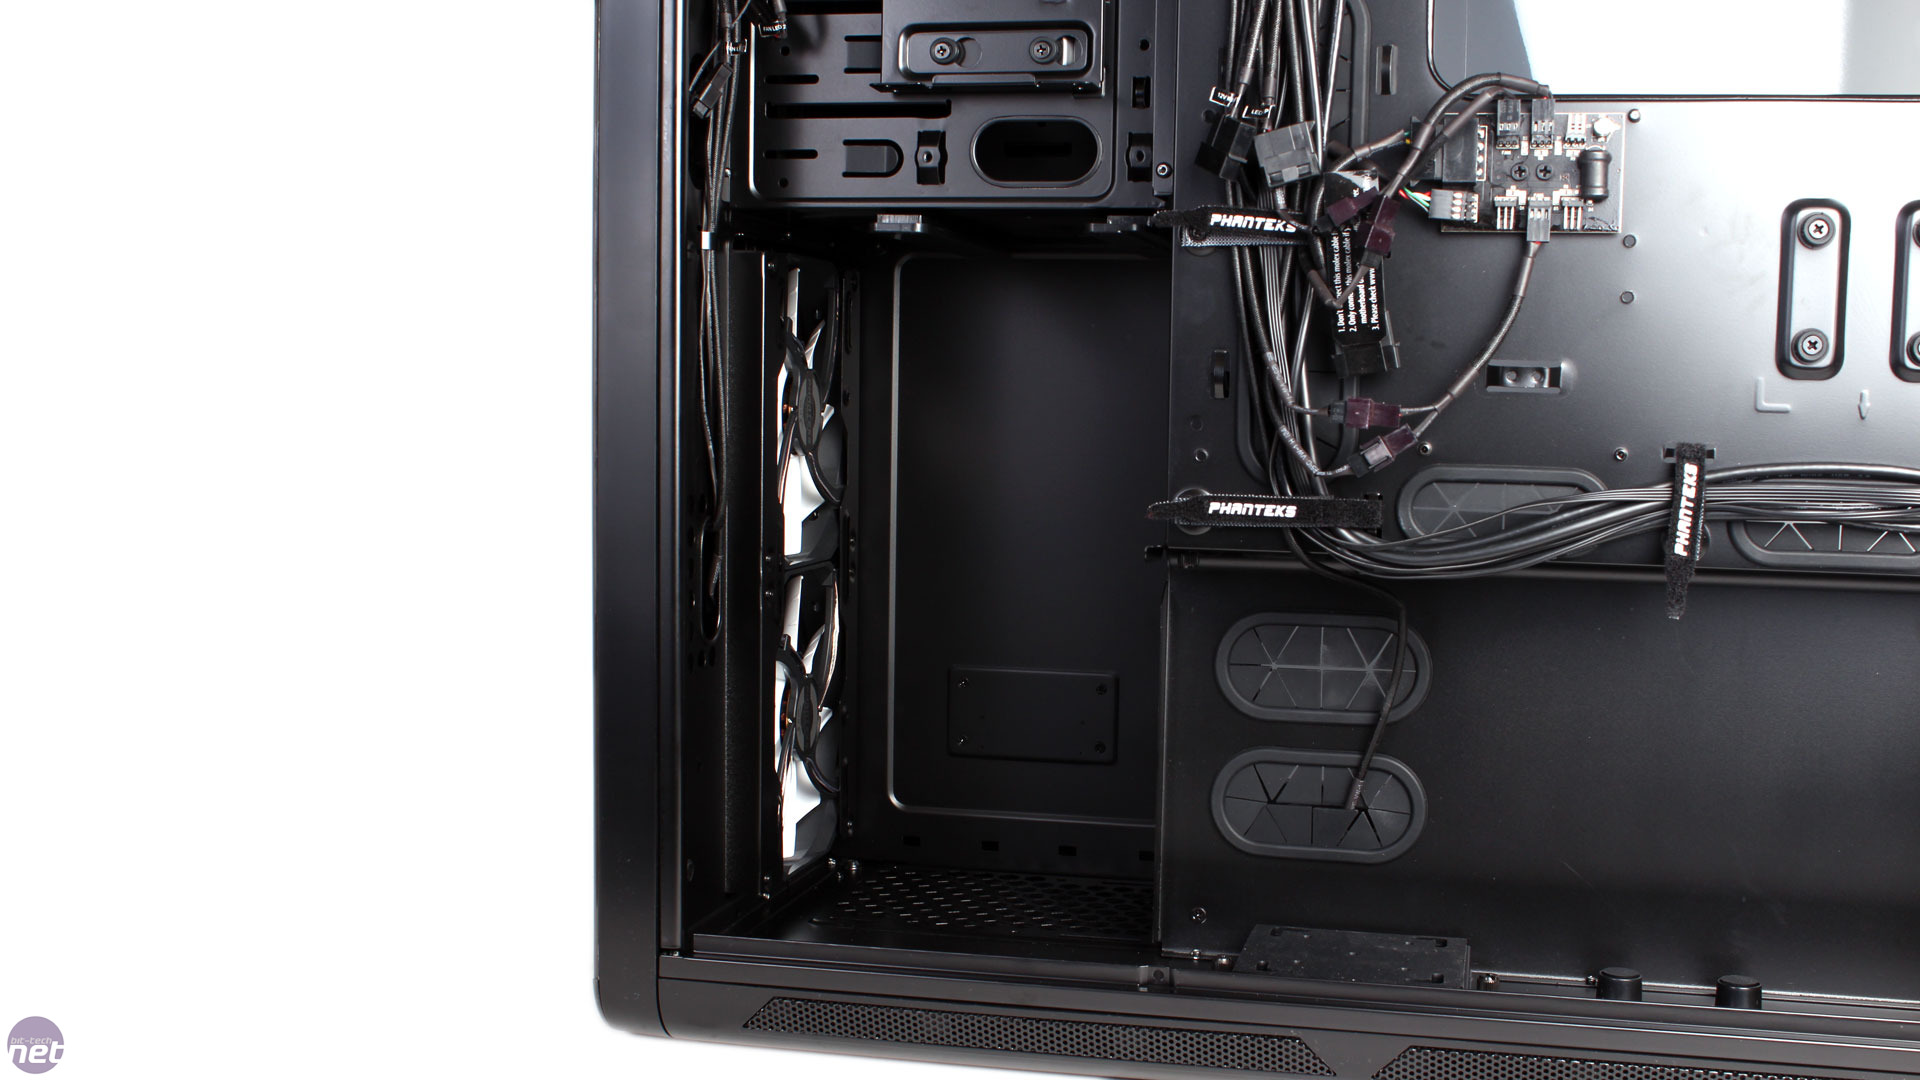 to enlarge Removing the drive cages frees up room for water cooling  #5A5A71